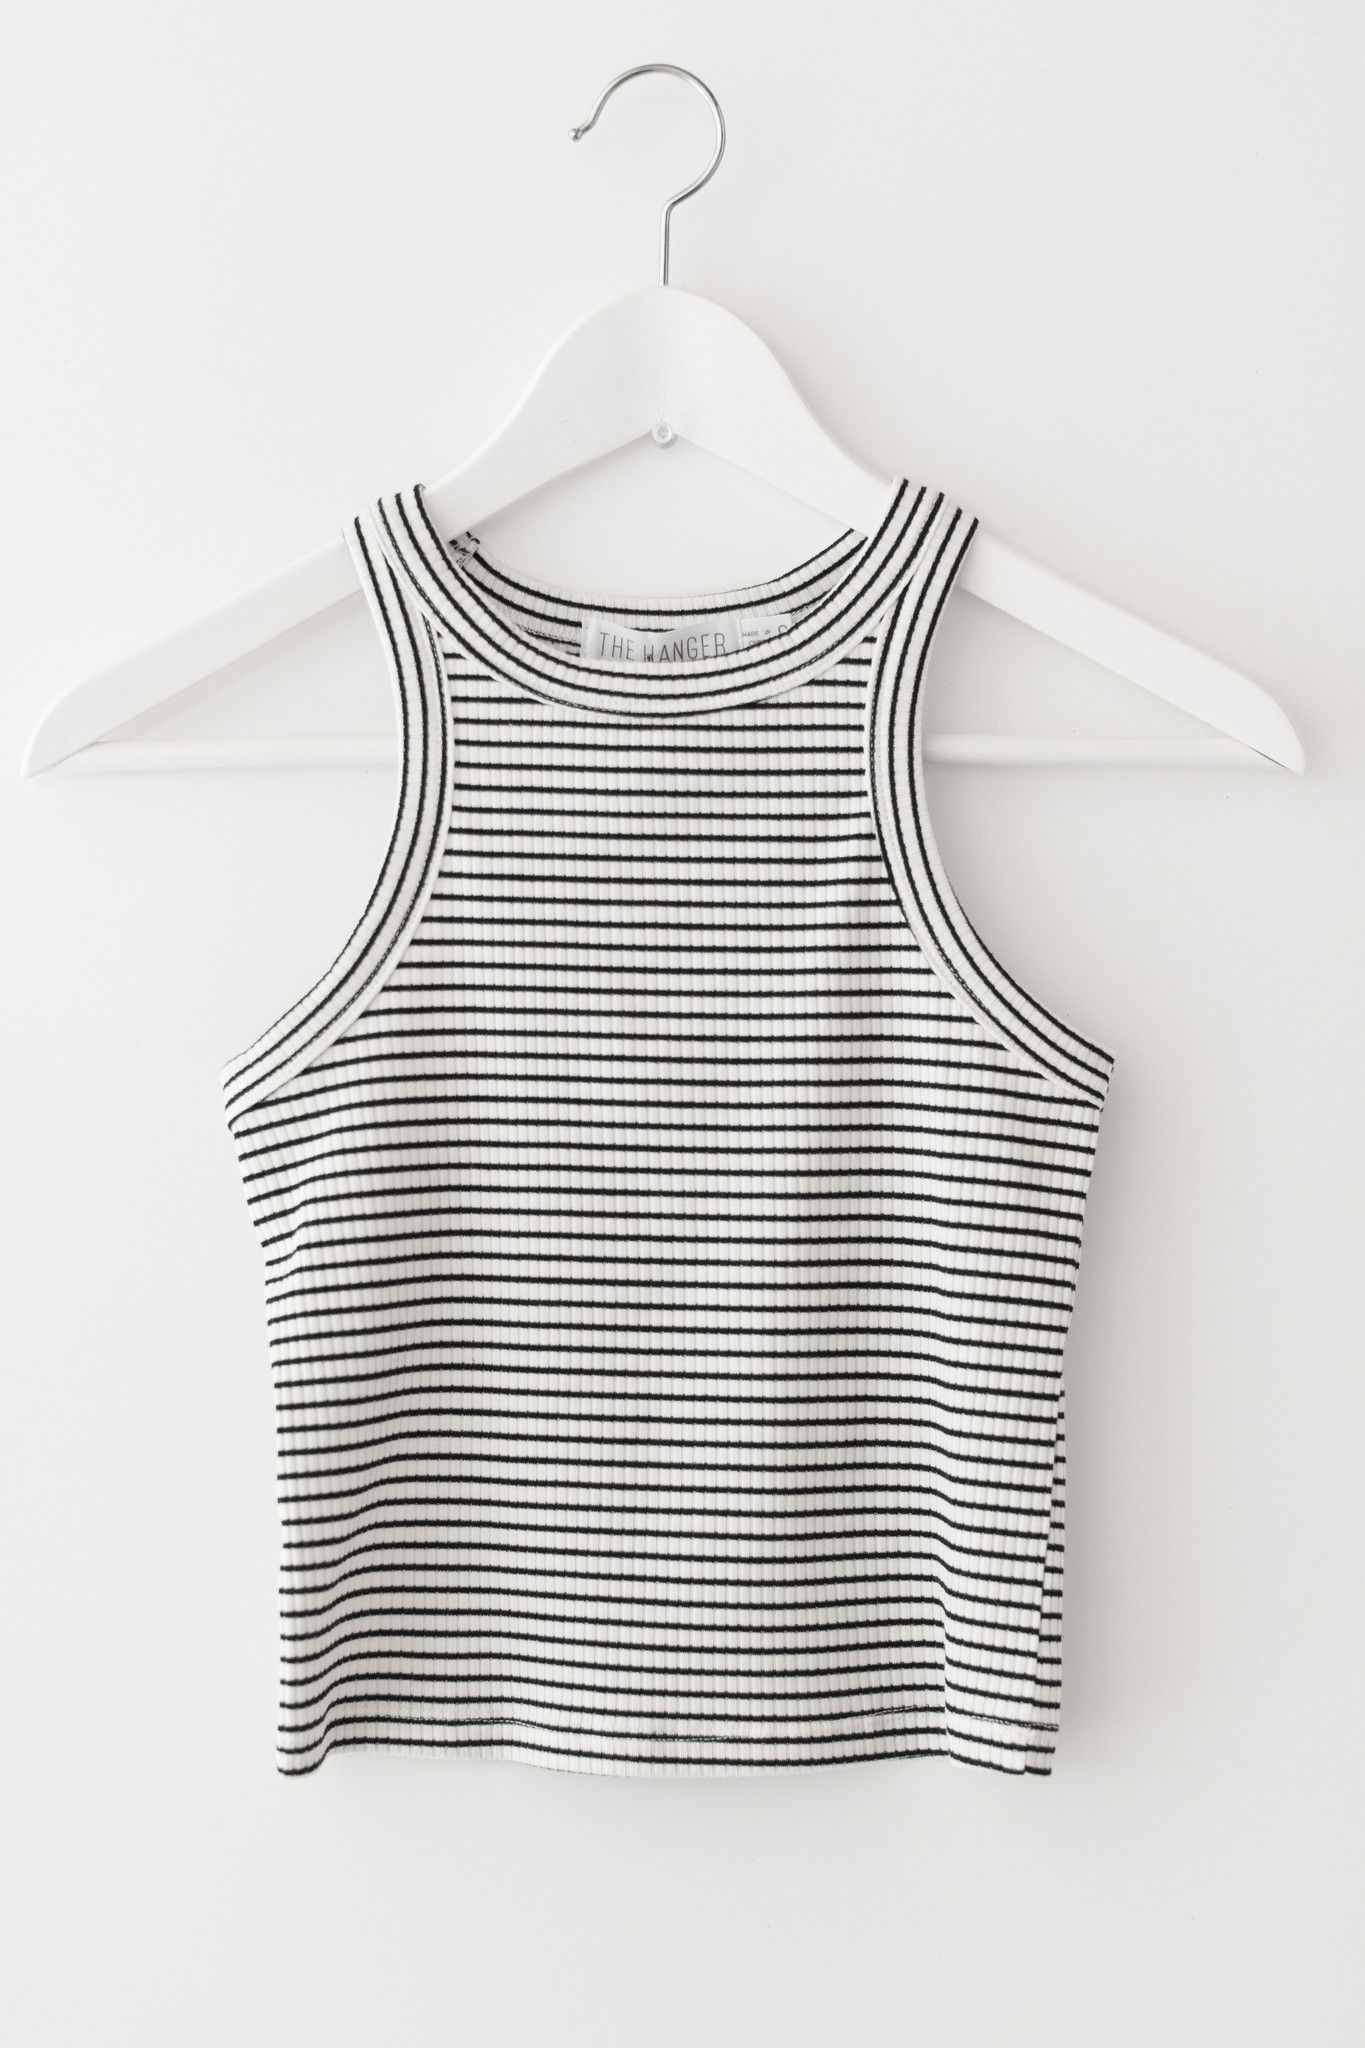 6e0a4fd50 Striped Crop Top … | capture5 | Ropa tumblr, Ropa, Blusas de licra